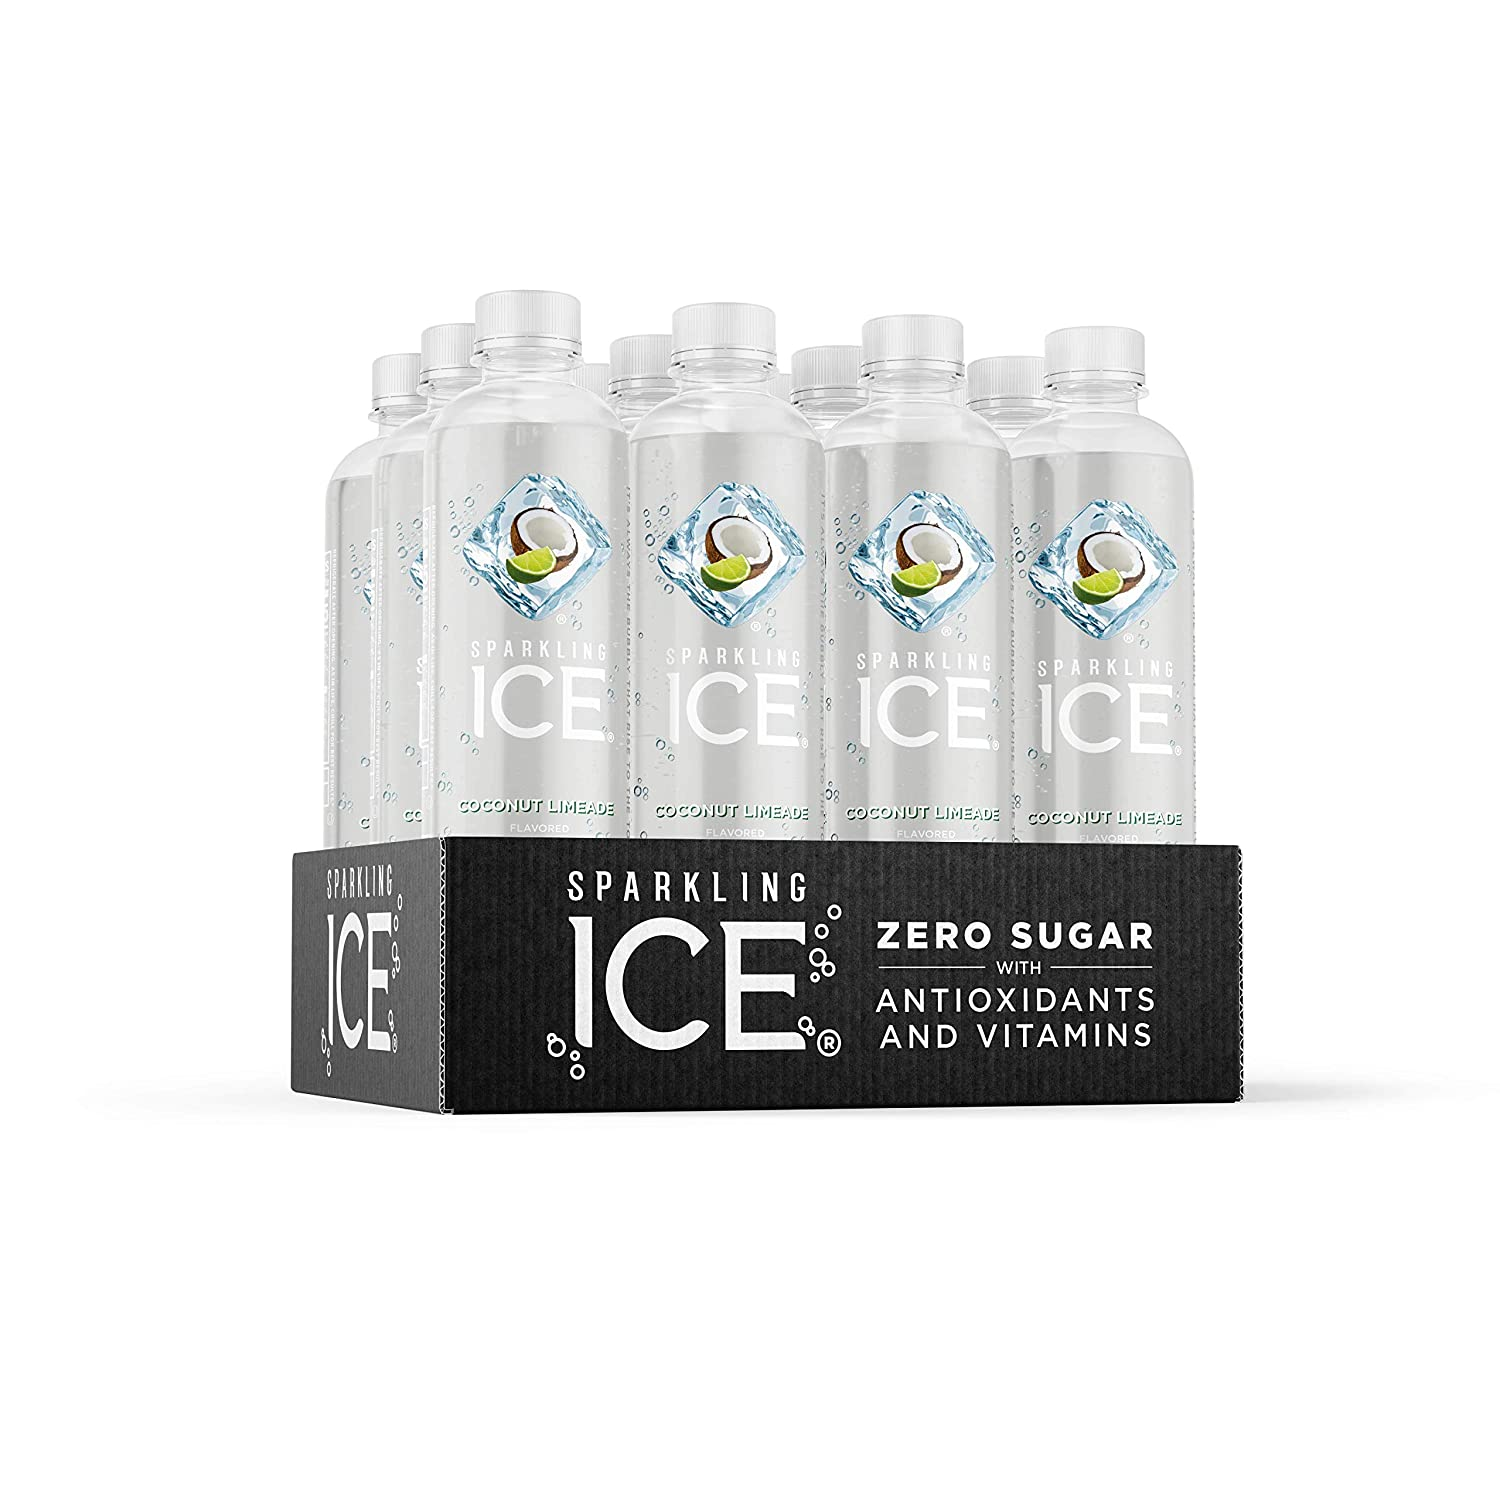 Sparkling Ice, Coconut Limeade Sparkling Water, with Antioxidants and Vitamins, Zero Sugar, 17 fl oz Bottles (Pack of 12)